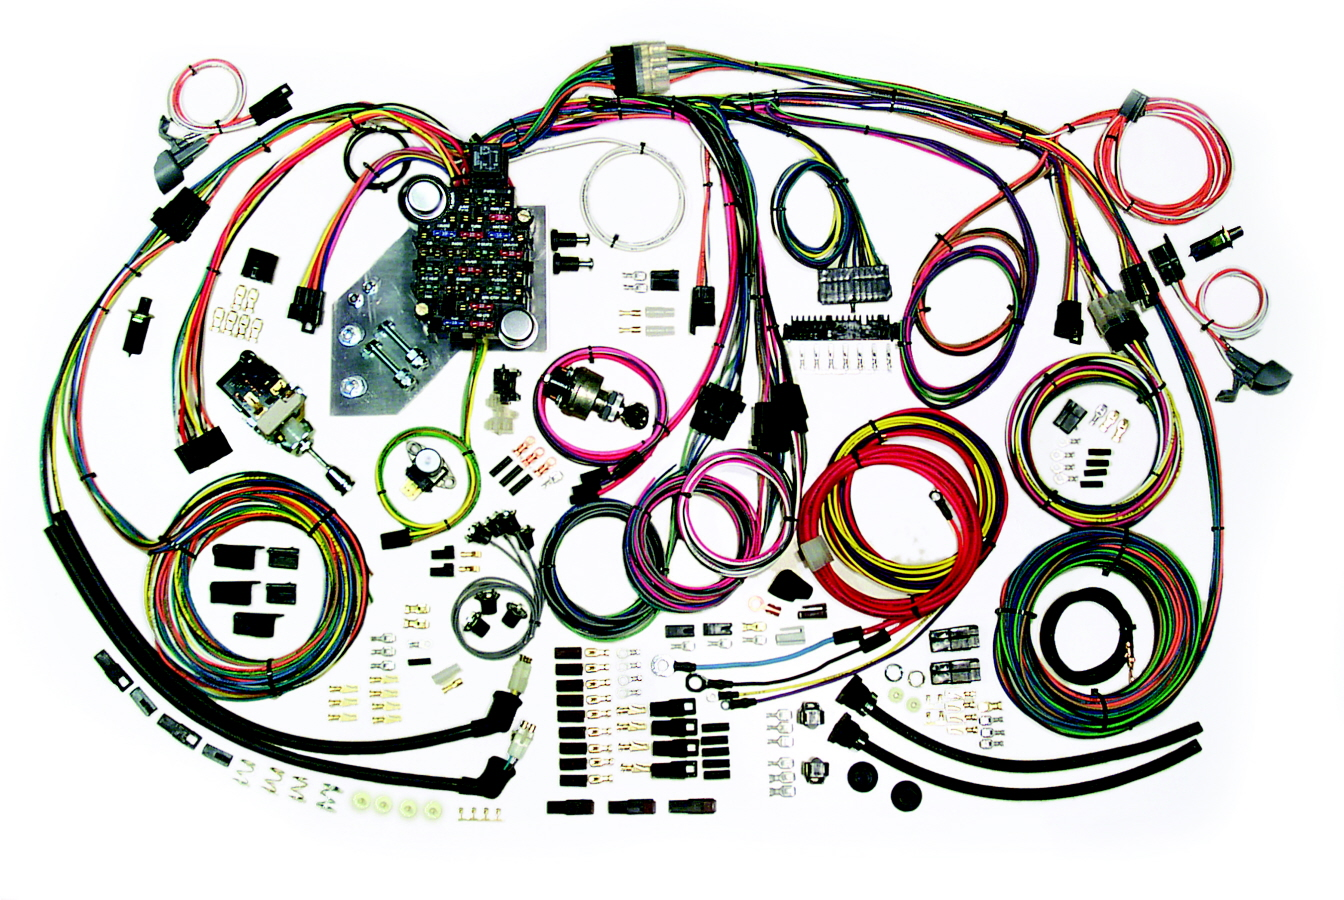 47 55 Chevy Pickup Classic Update Wiring Harness 500467 Porsche 911 Wiring  Harness 1951 Ford Wiring Harness